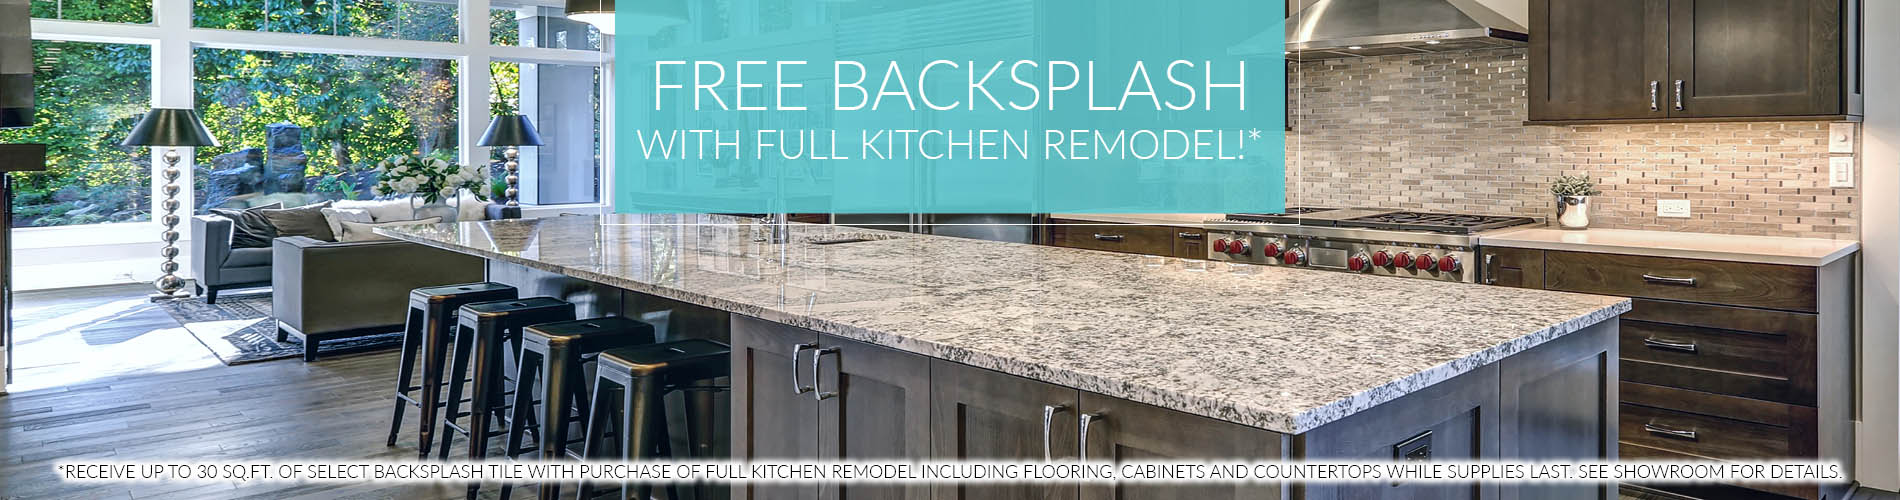 Free backsplash with full kitchen remodel! - Receive up to 30sq.ft. of select backsplash tile with purchase of full kitchen remodel including flooring, cabinets and countertops while supplies last.  See showroom for details.